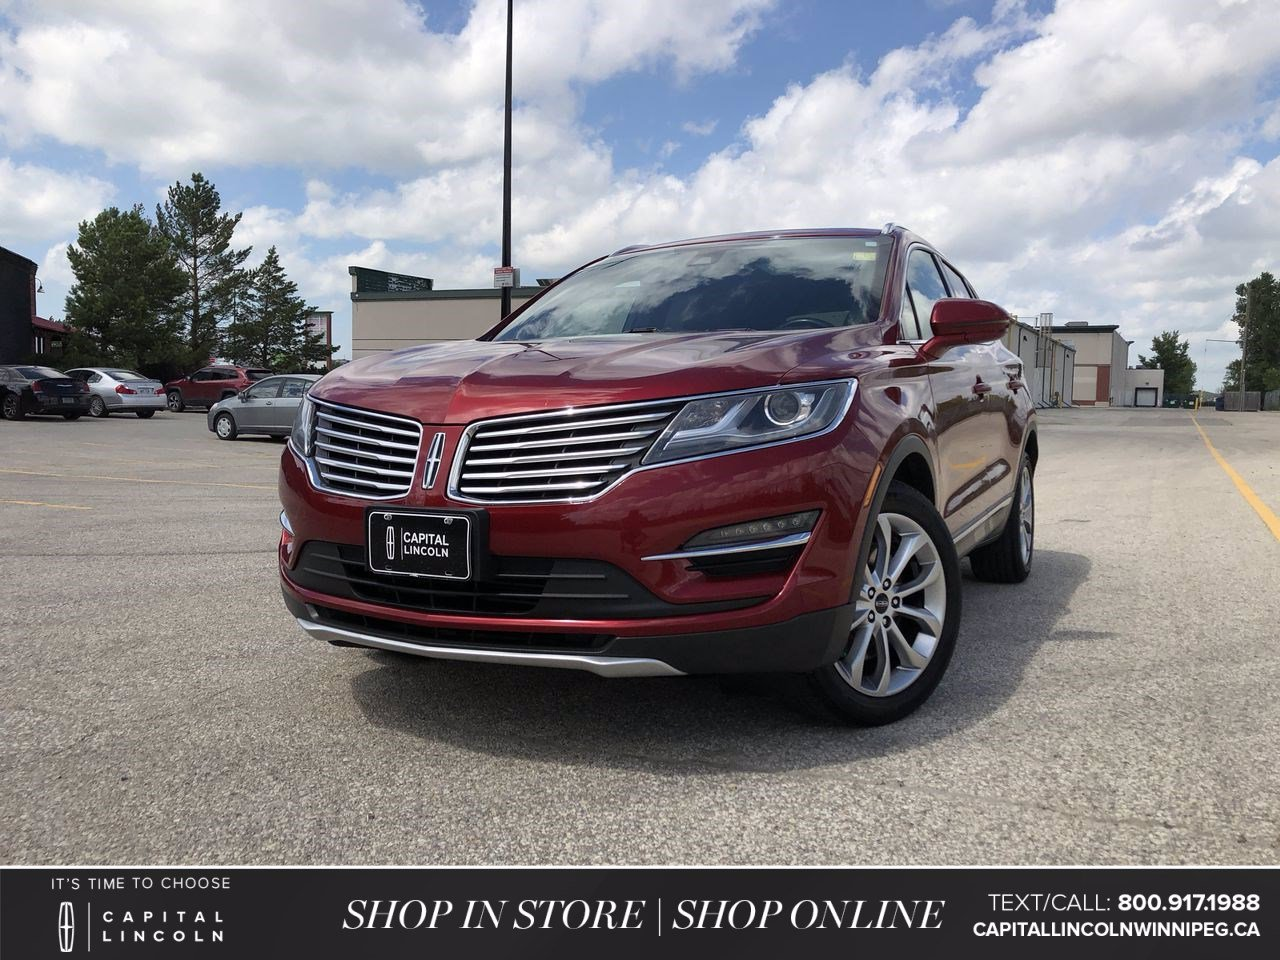 Pre-Owned 2015 Lincoln MKC 4DR AWD *Navigation *Leather Seats *Memory Seat